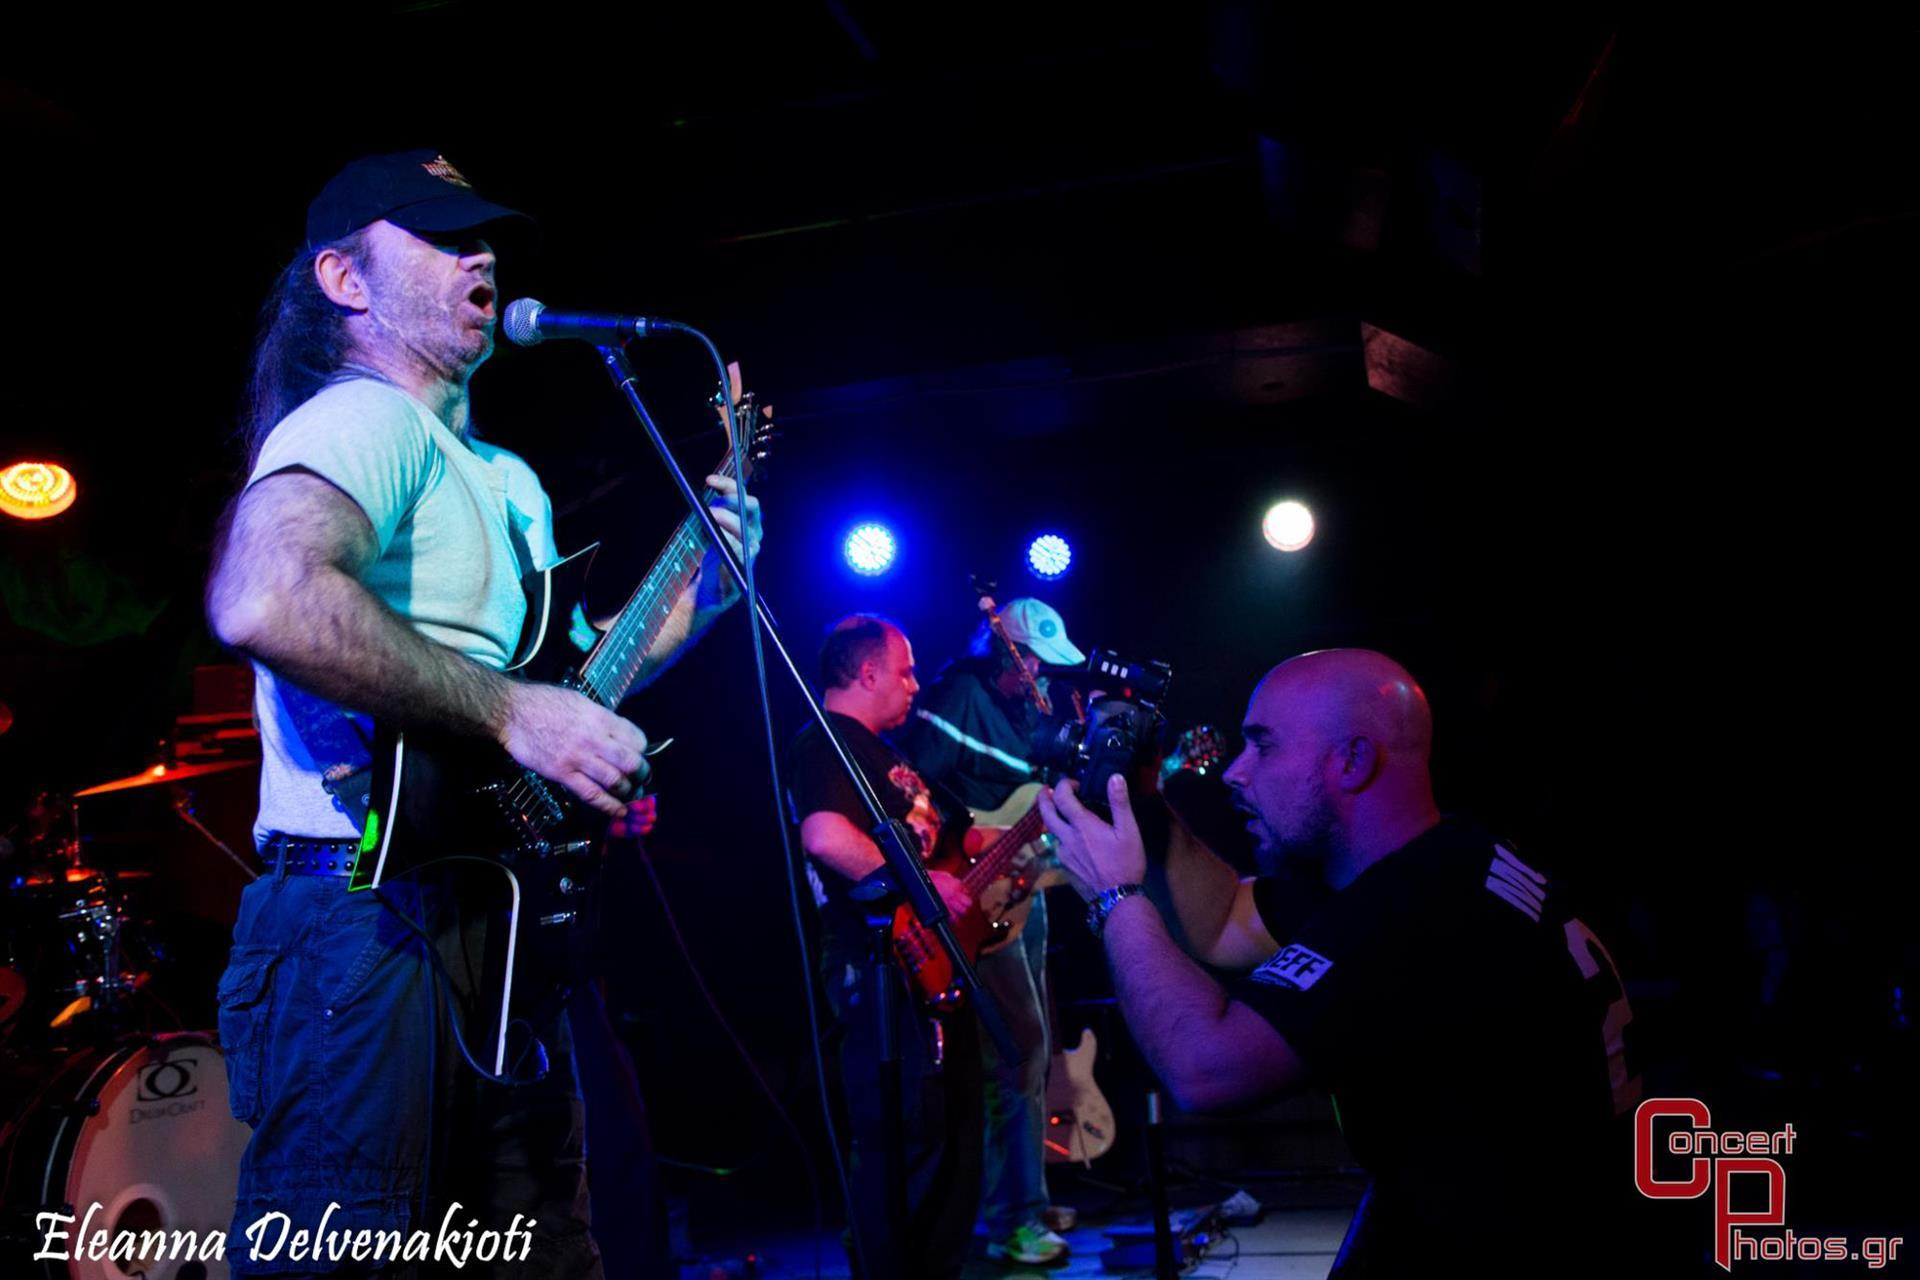 Battle Of The Bands Athens - Leg 4-test photographer:  - Battle Of The Bands-20150208-205552